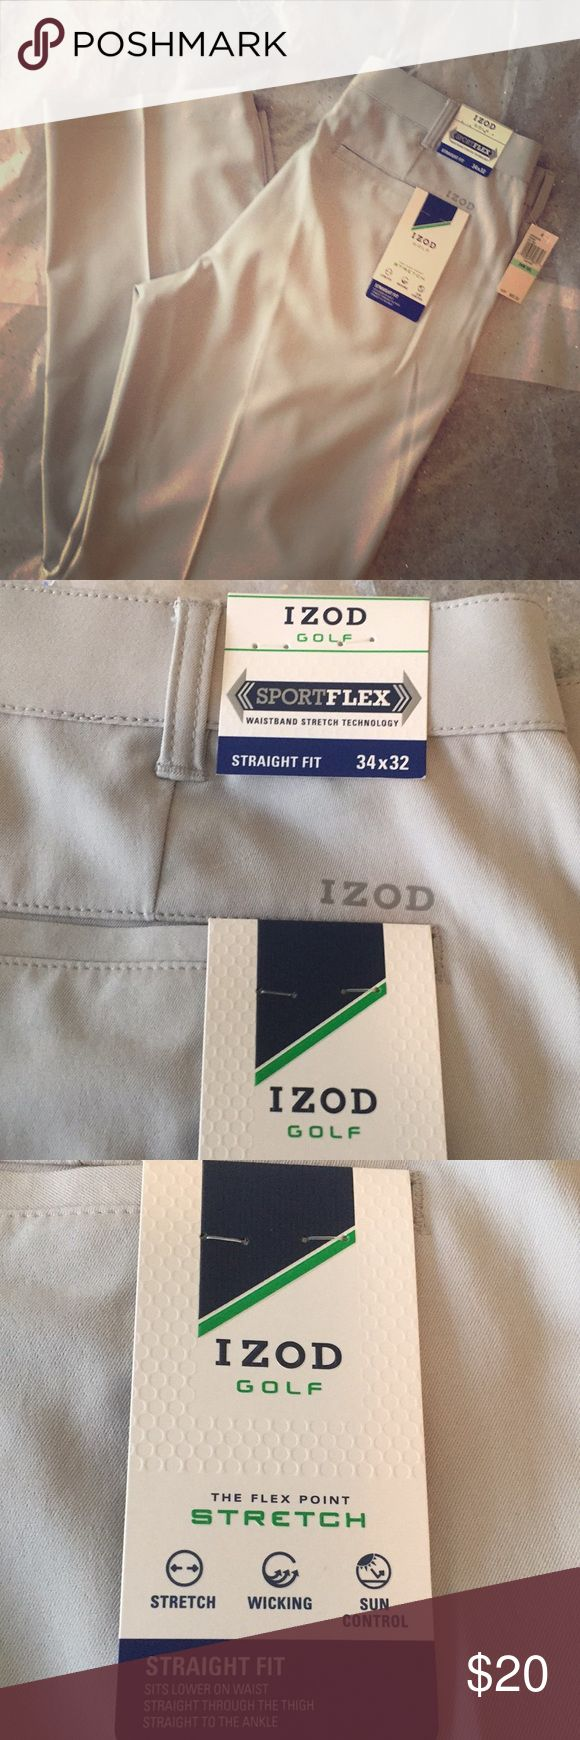 New Years Price 🎉NWT IZOD Golf pants NWT IZOD grey golf pants. Size 34x32 straight fit. Sits lower on waist, straight through the thigh and straight to the ankle. Izod Pants Dress